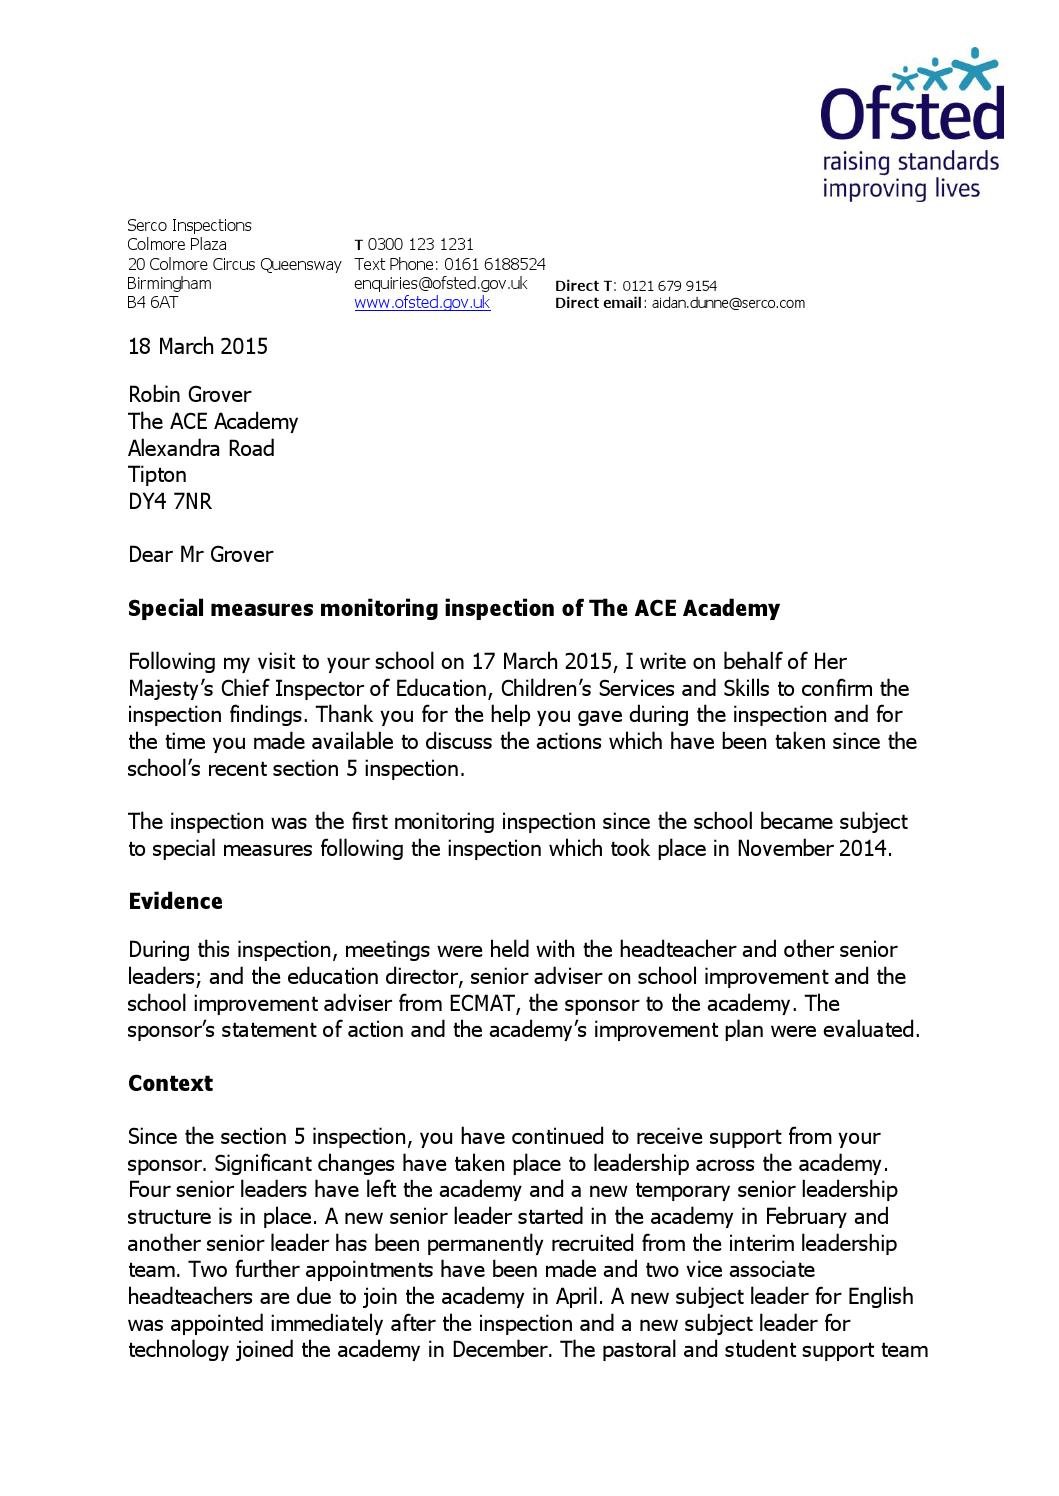 First Ofsted Monitoring Visit Letter by Schudio - issuu